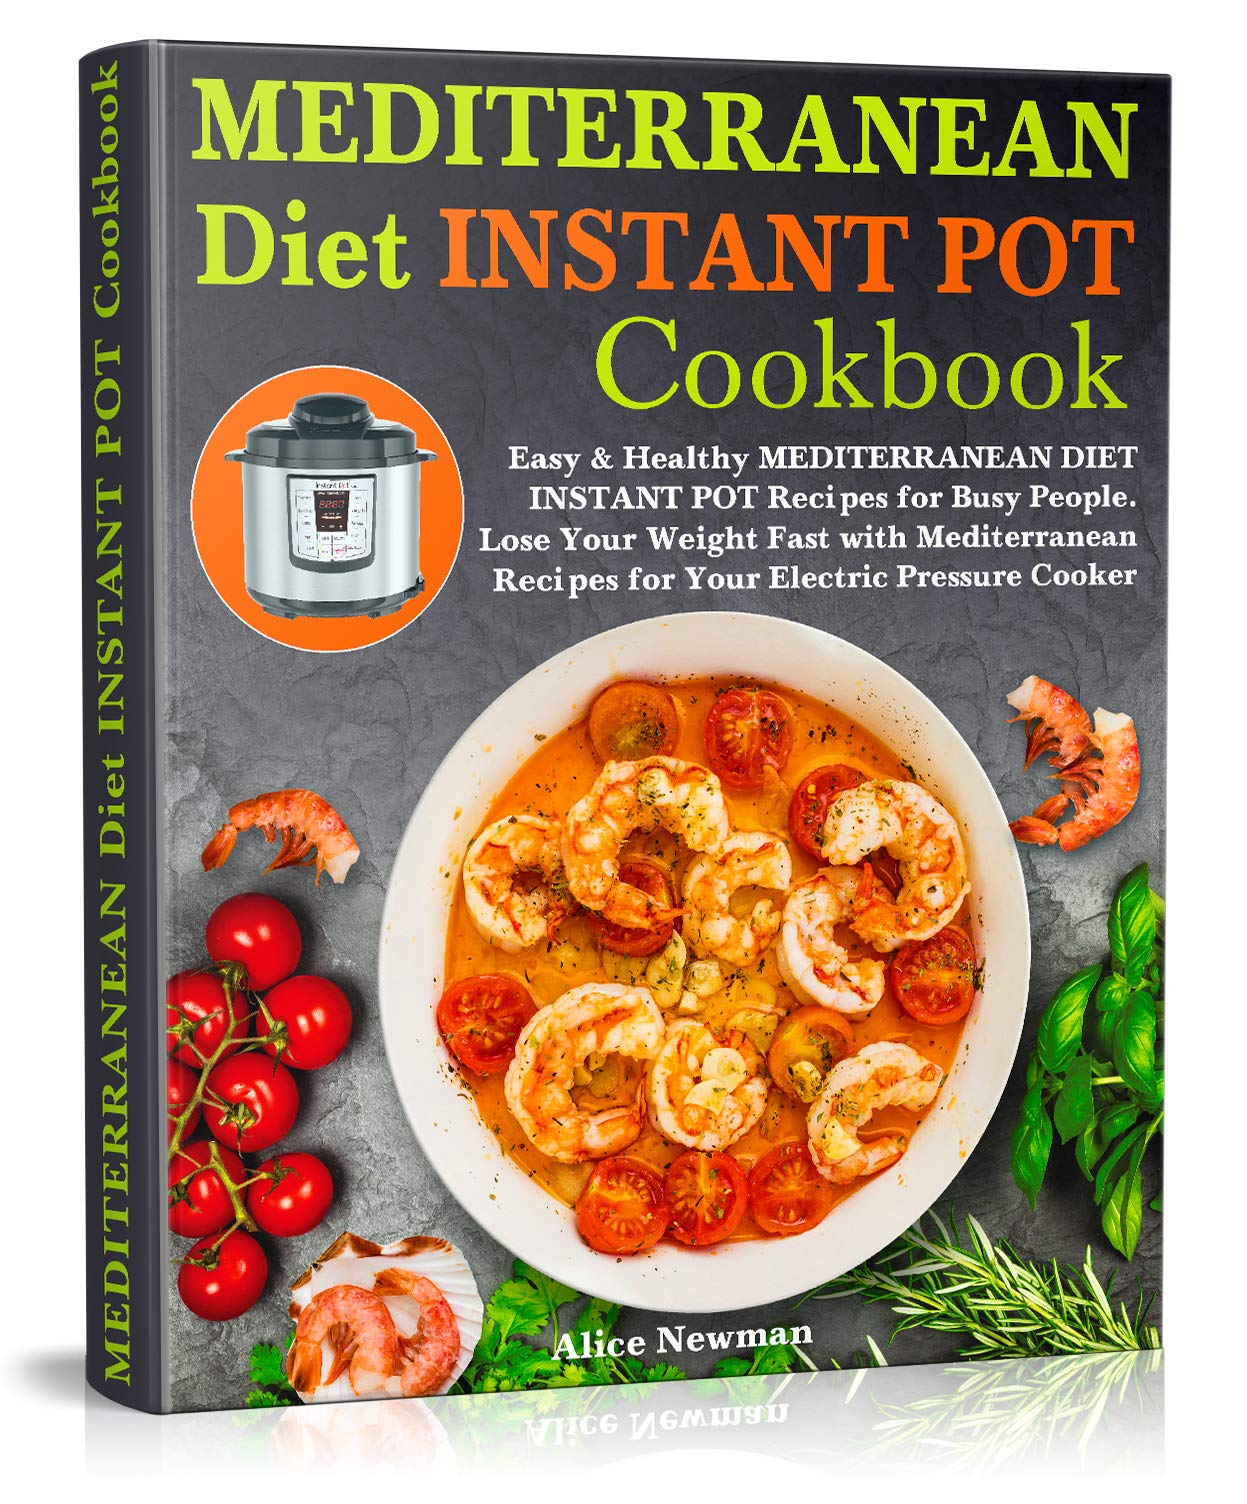 Mediterranean Diet Instant Pot Cookbook: Easy and Healthy Mediterranean Diet Instant Pot Recipes for Busy People. Lose Your Weight Fast with Amazing Recipes ... Electric Pressure Cooker (English Edition)